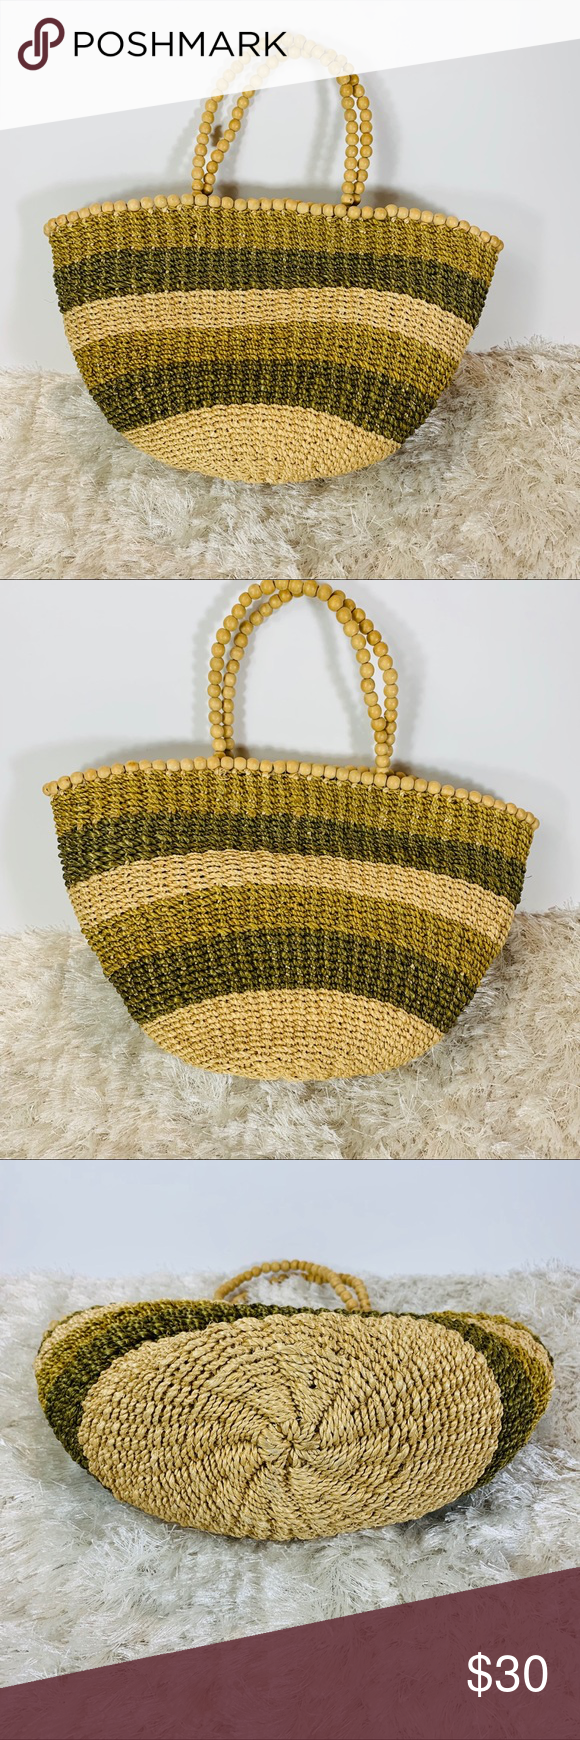 "Mini Straw Tote Bag Purse Khaki Green Natura Great straw bag There are two handles  The bag measures 9"" tall x 15"" wide at top The top edge of the purse is rimmed in wooden beads and handles are also beads One large compartment w a white small zipper fabric compartment- this fabric is mildly stained Magnetic closure  KK2 Bags Totes #woodentotebag"